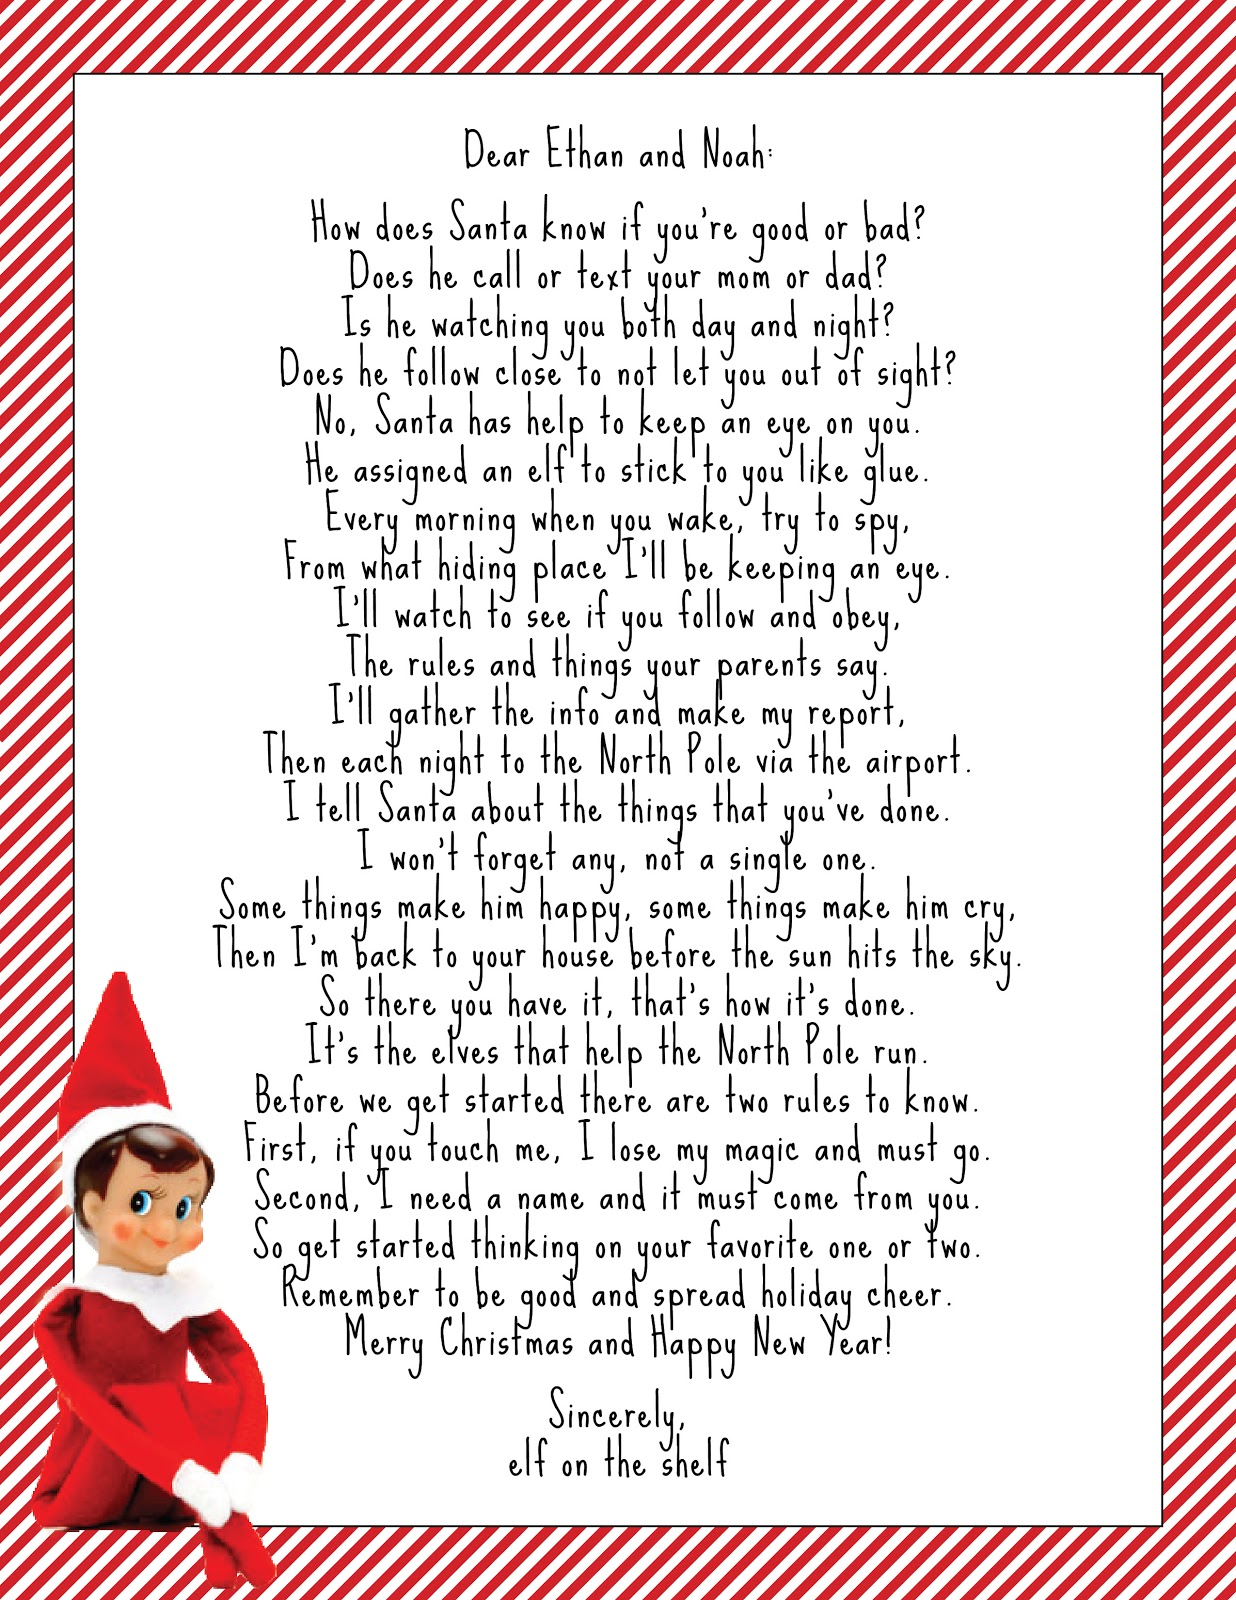 Elf on the Shelf Intro Letter